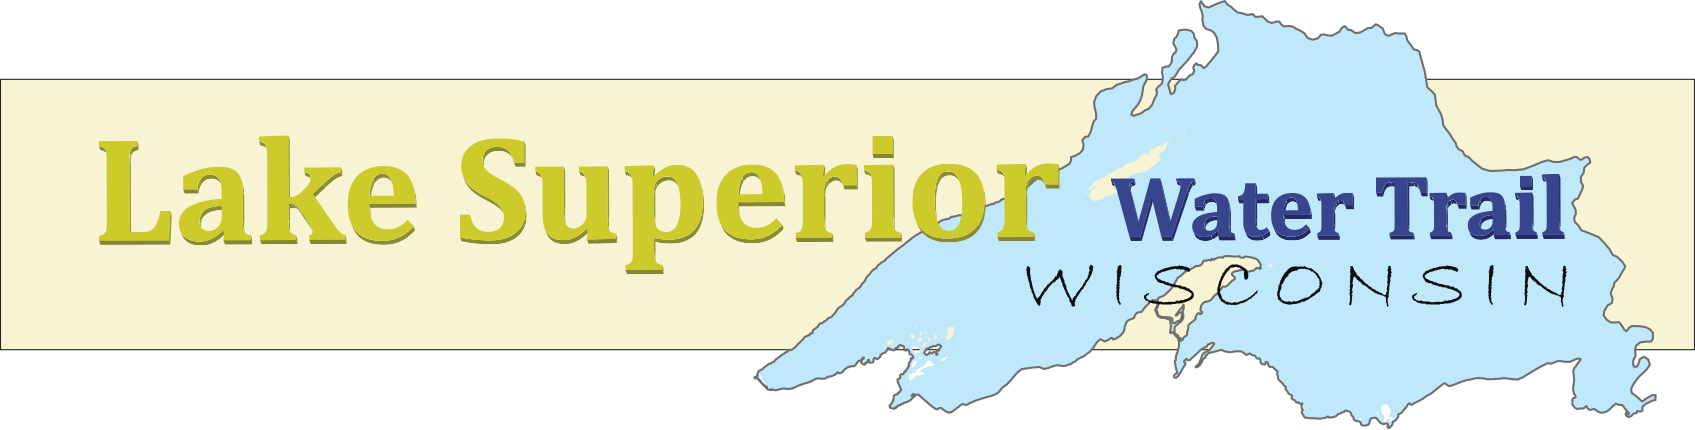 Lake Superior Water Trail Header